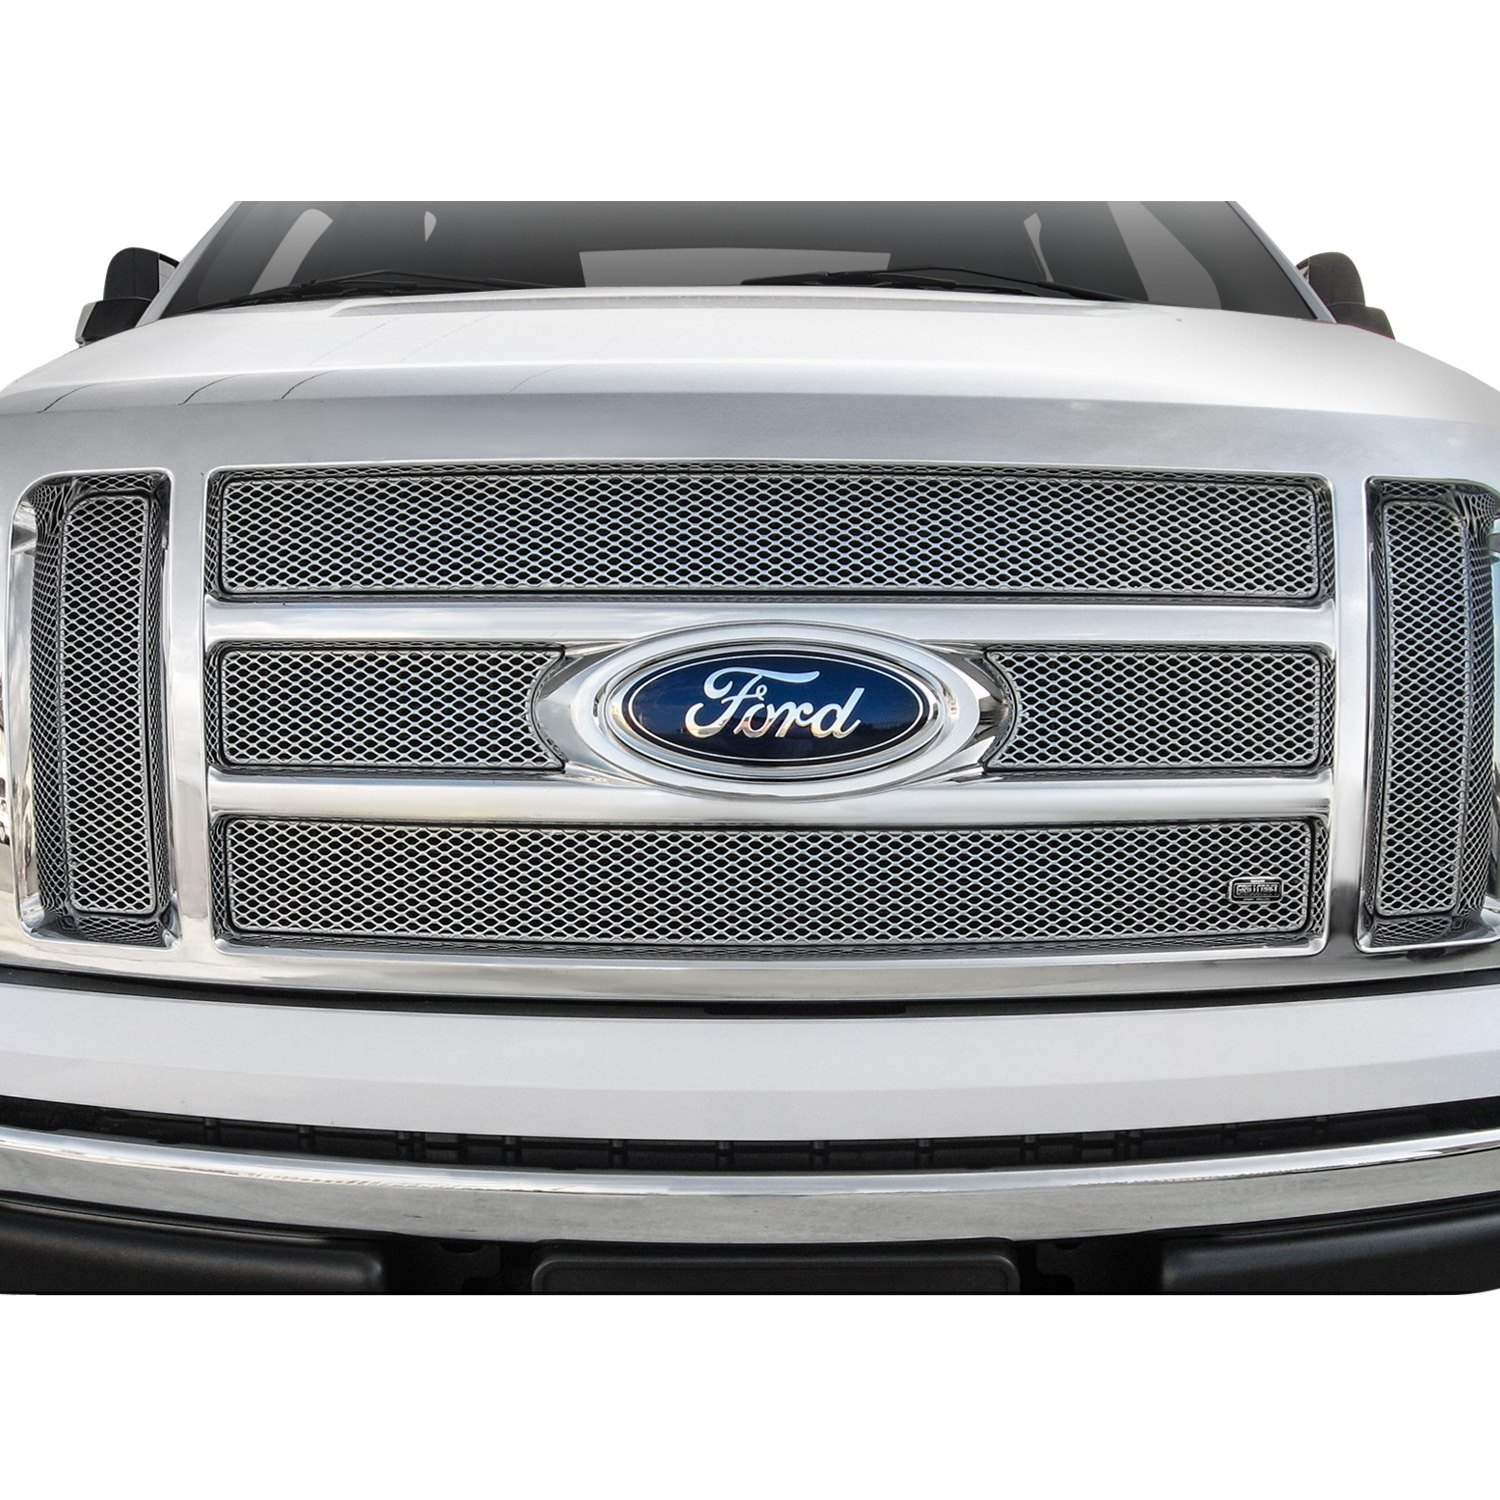 Ford Expedition 2008 For Sale: Ford Expedition EL King Ranch / EL Limited